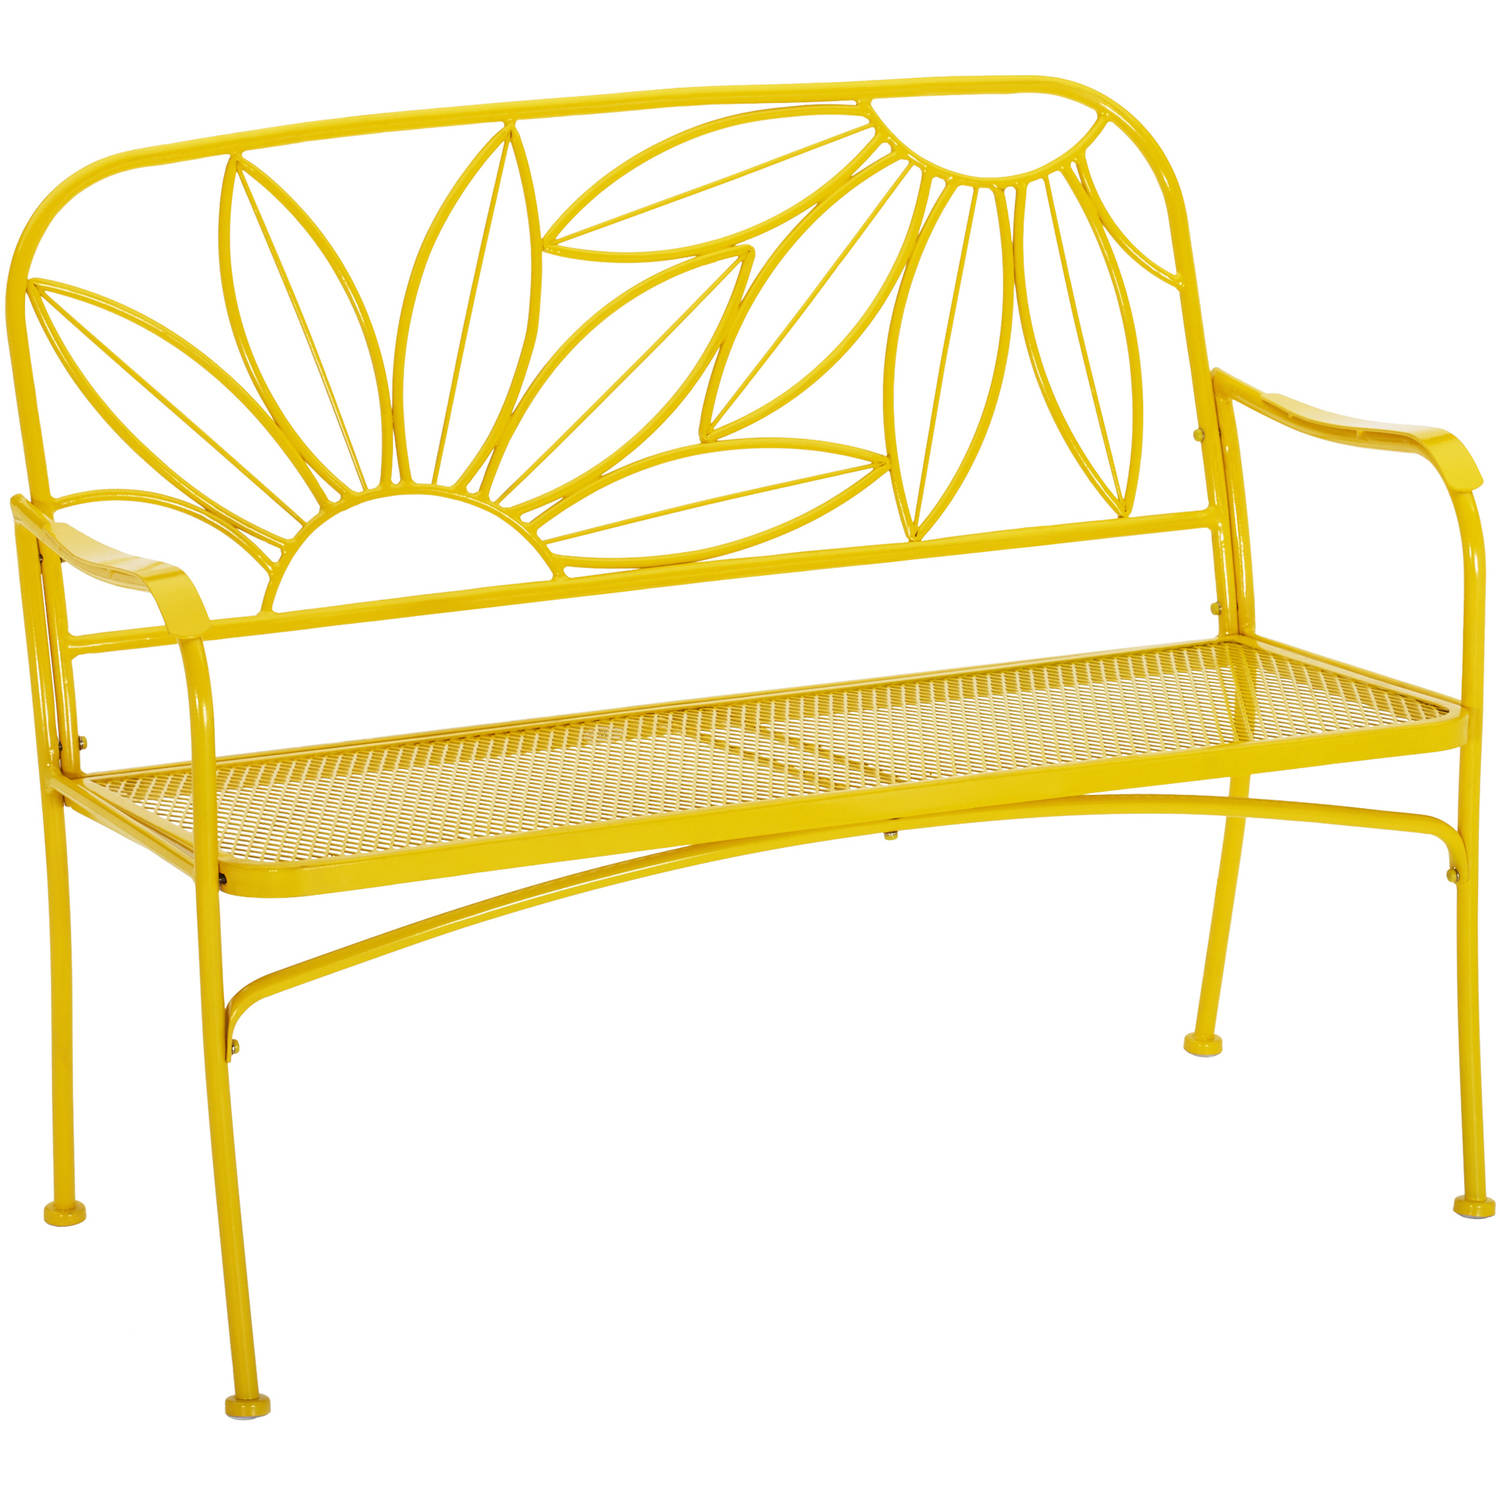 yellow patio furniture. Mainstays Hello Sunny Outdoor Patio Bench, Yellow Furniture